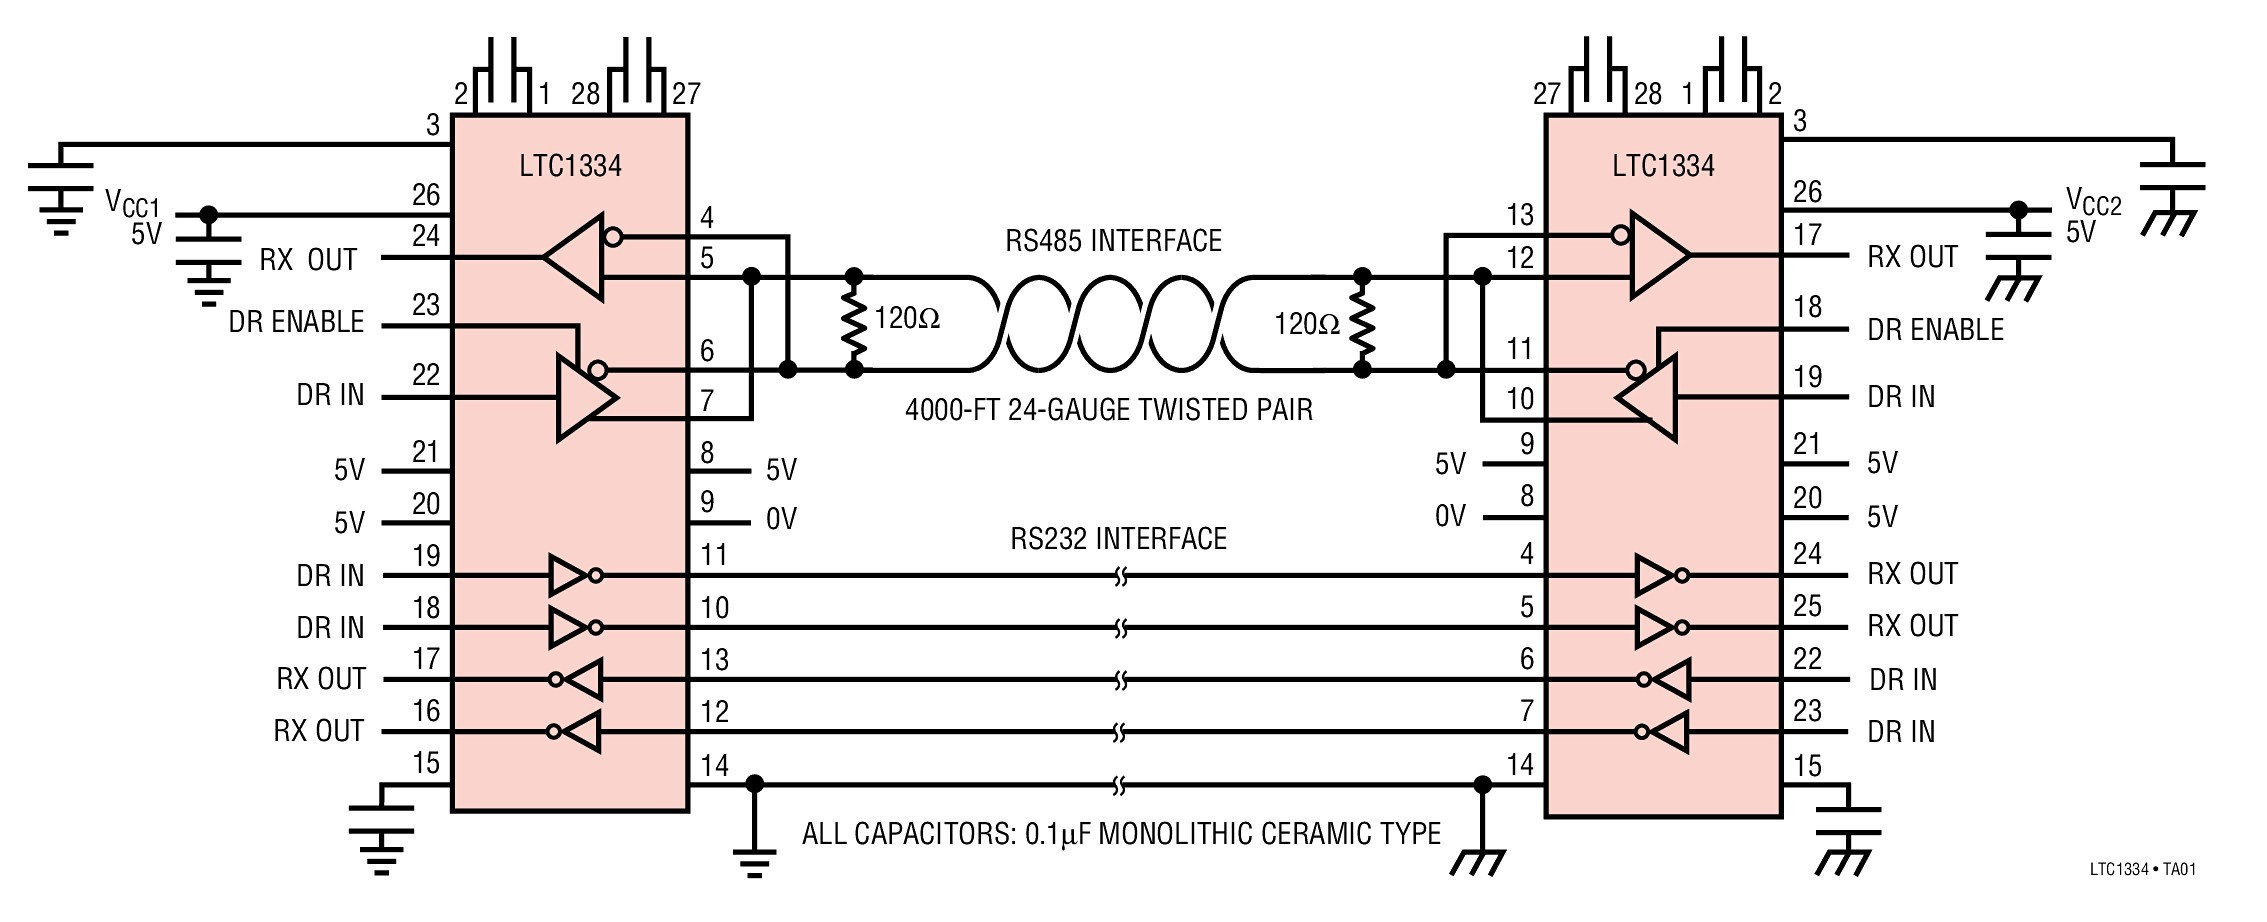 Rs485 To Usb Wiring Diagram | Wiring Library - Rs485 Wiring Diagram